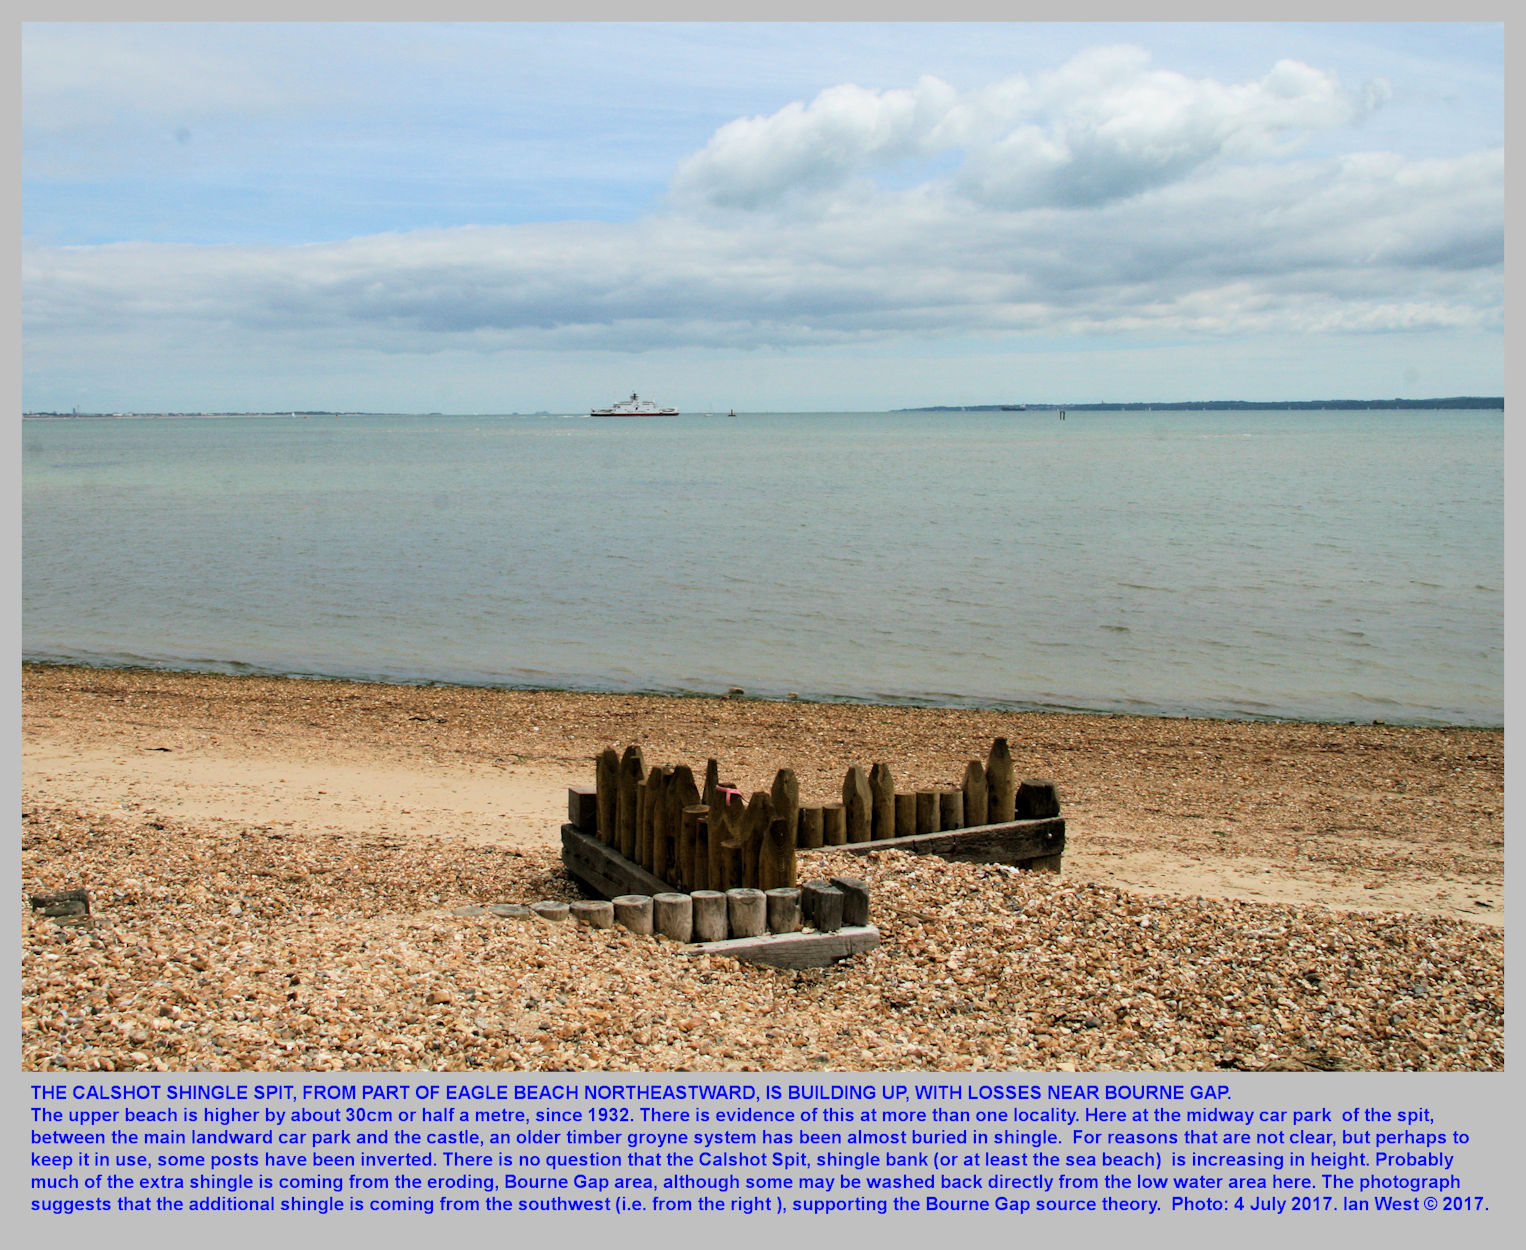 An older zigzag, timber groyne at the midway lcoation of Calshot Spit is showing the same rise in the top shingle bank, as at Eagle Cliff, near Eaglehurst